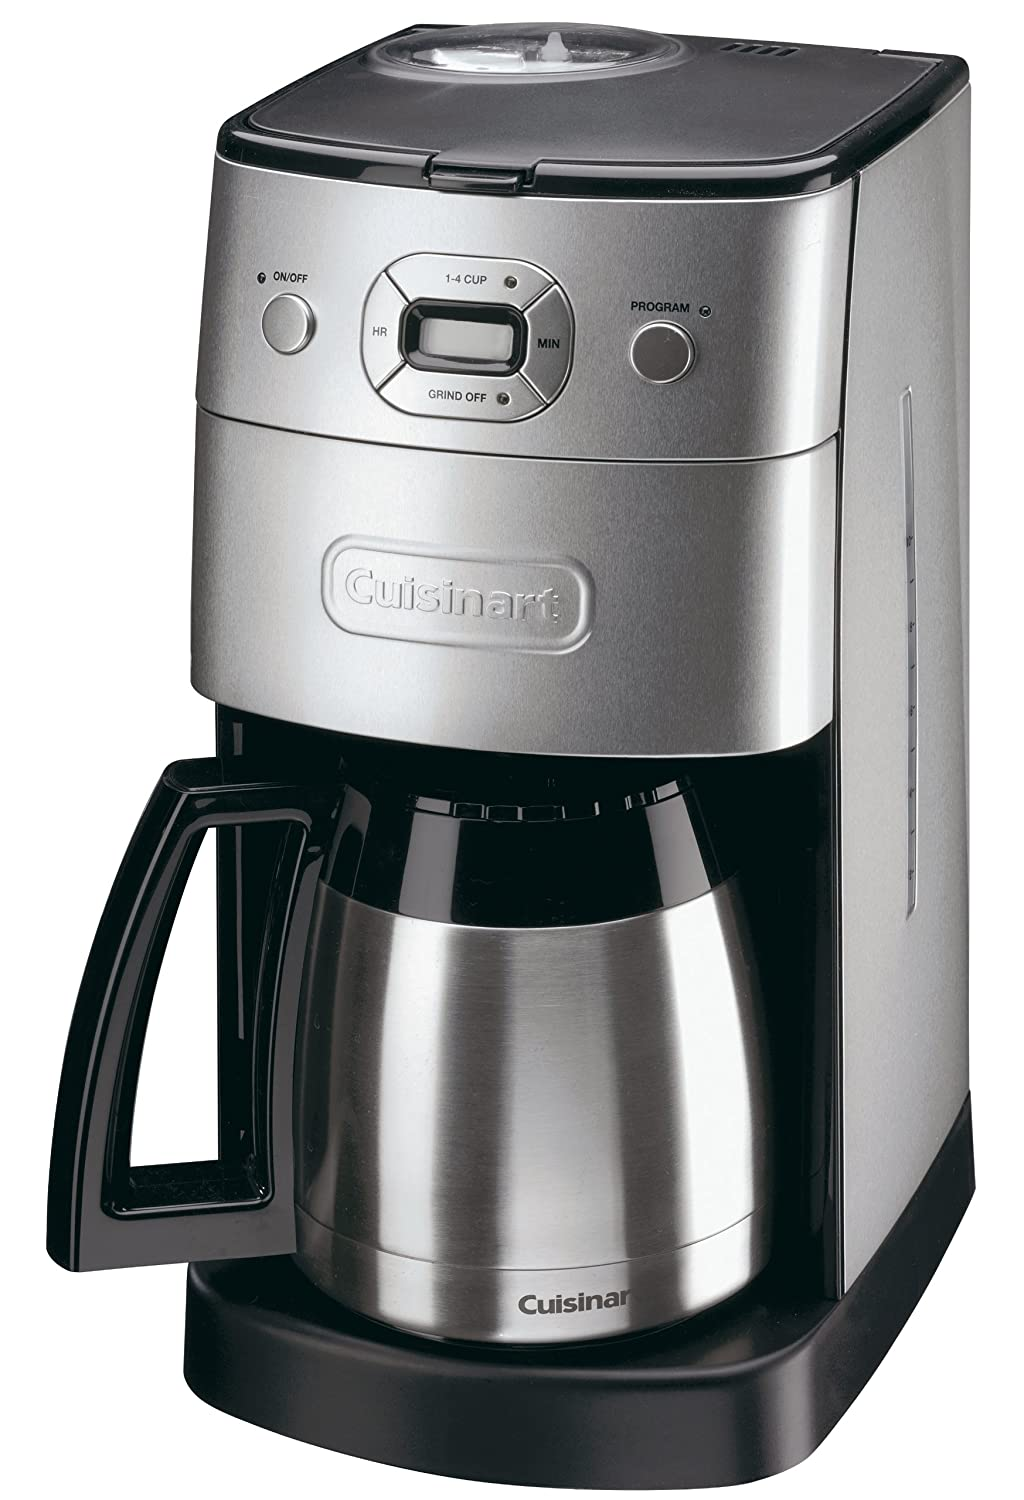 Cuisinart DGB650BCU Grind and Brew Automatic Filter Coffee Maker Coffee grinder Coffee_Machines Small_Appliances Thermal carafe